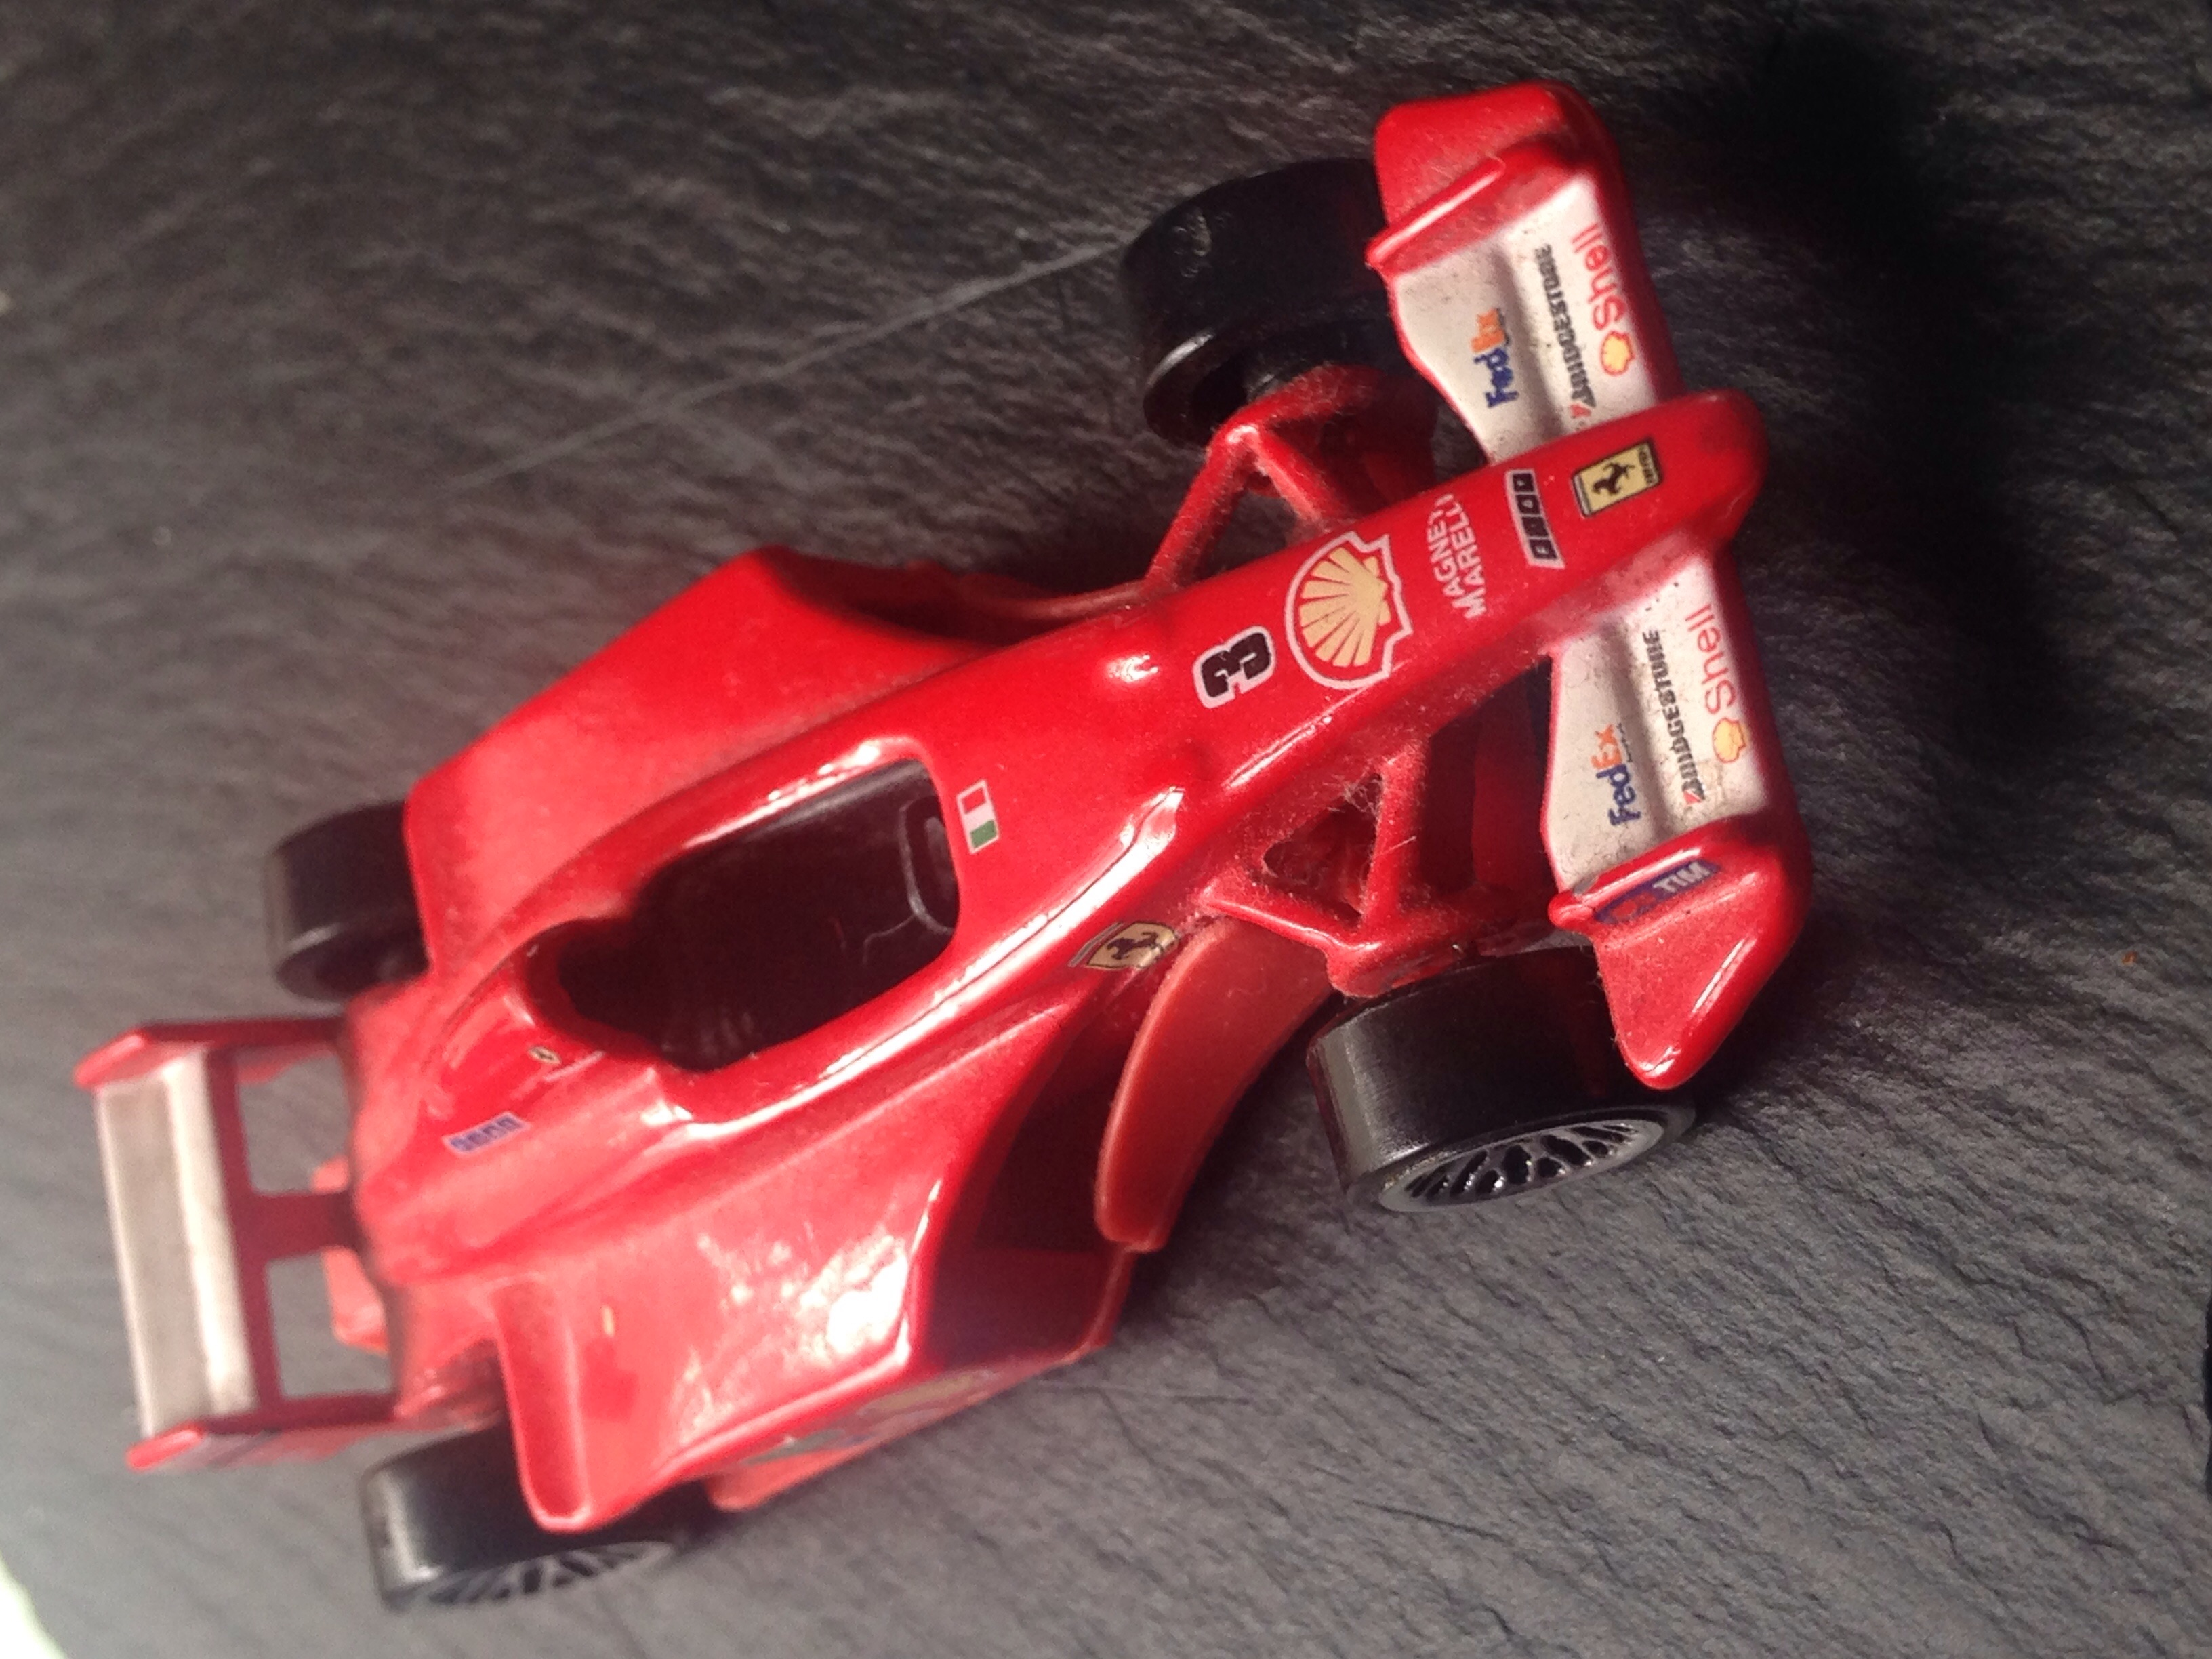 Collection item Red Ferrari Toy Racing Car